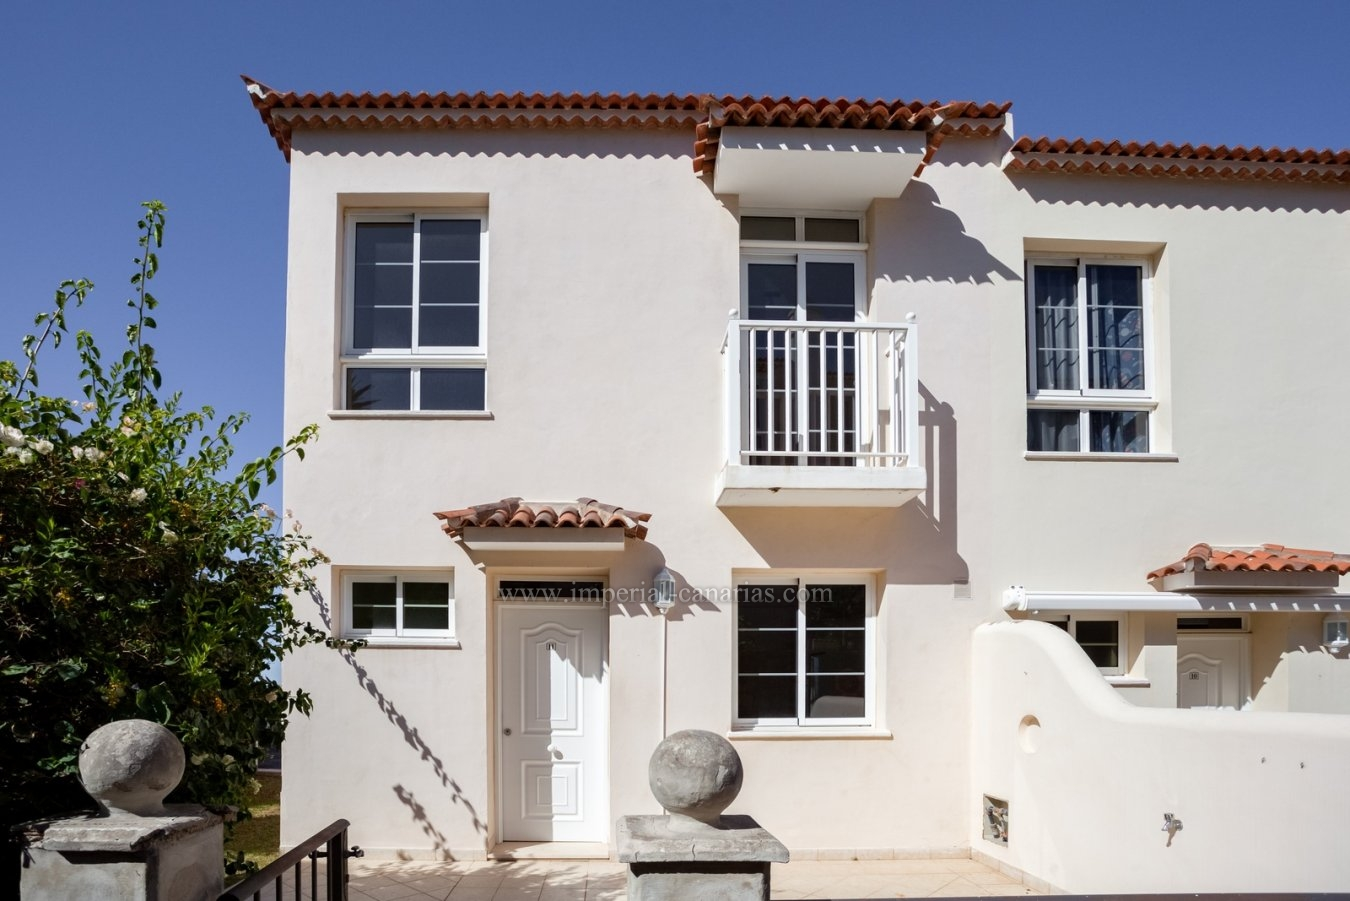 Handsome loxoury demi detached villa with sea views!